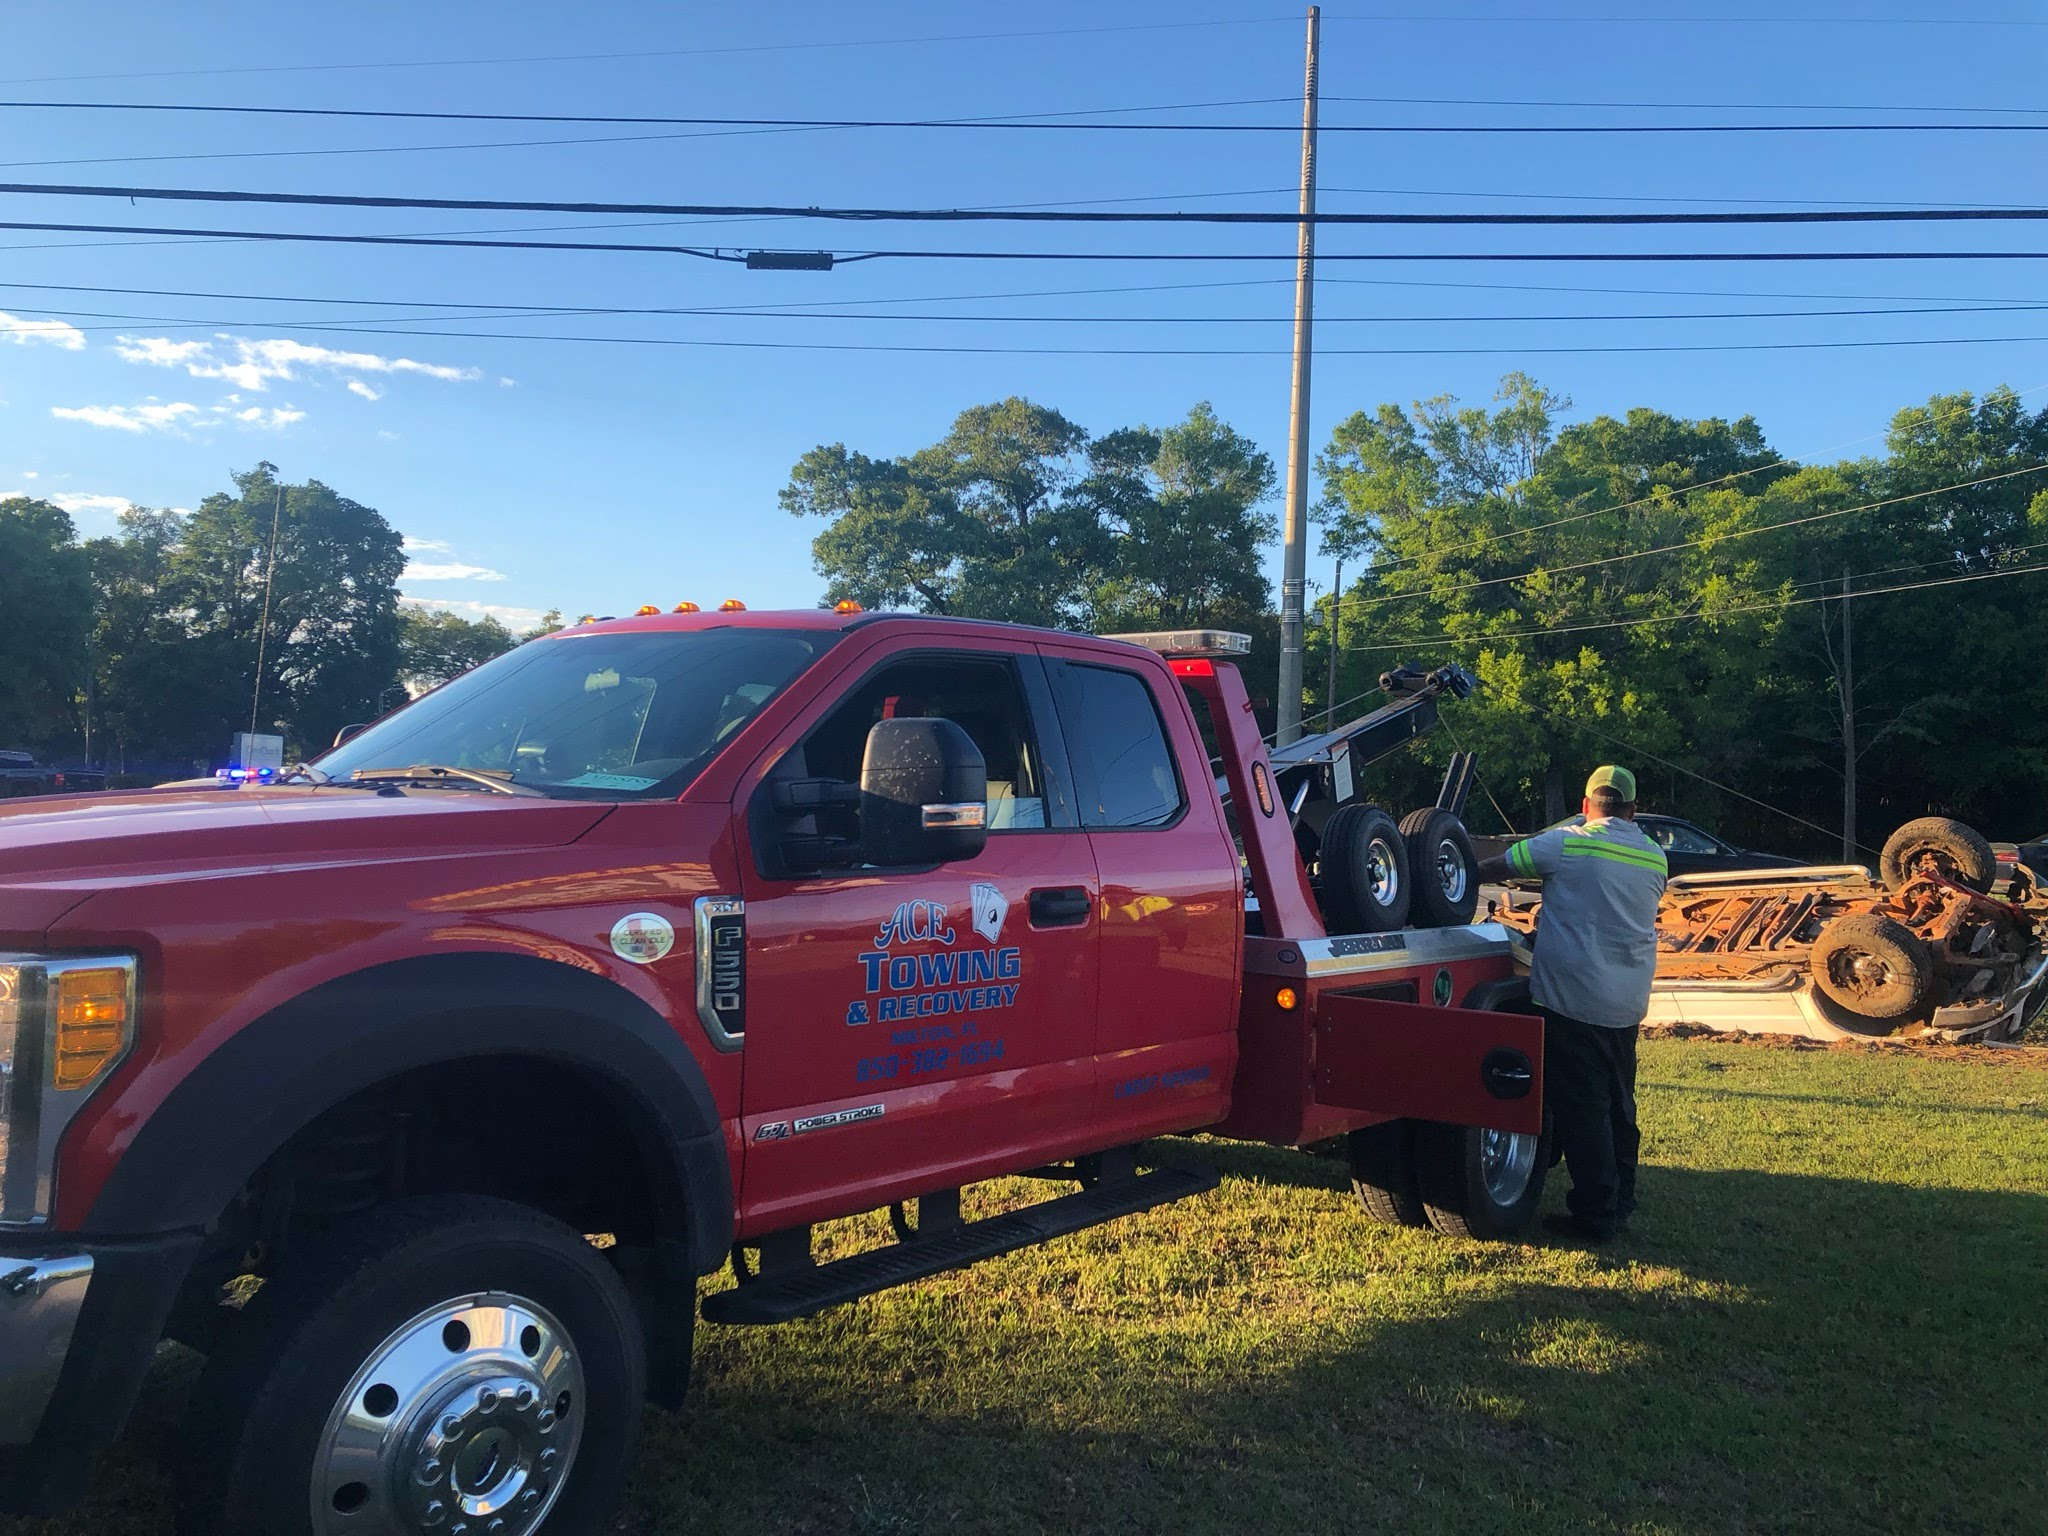 Ace Towing & Recovery image 67